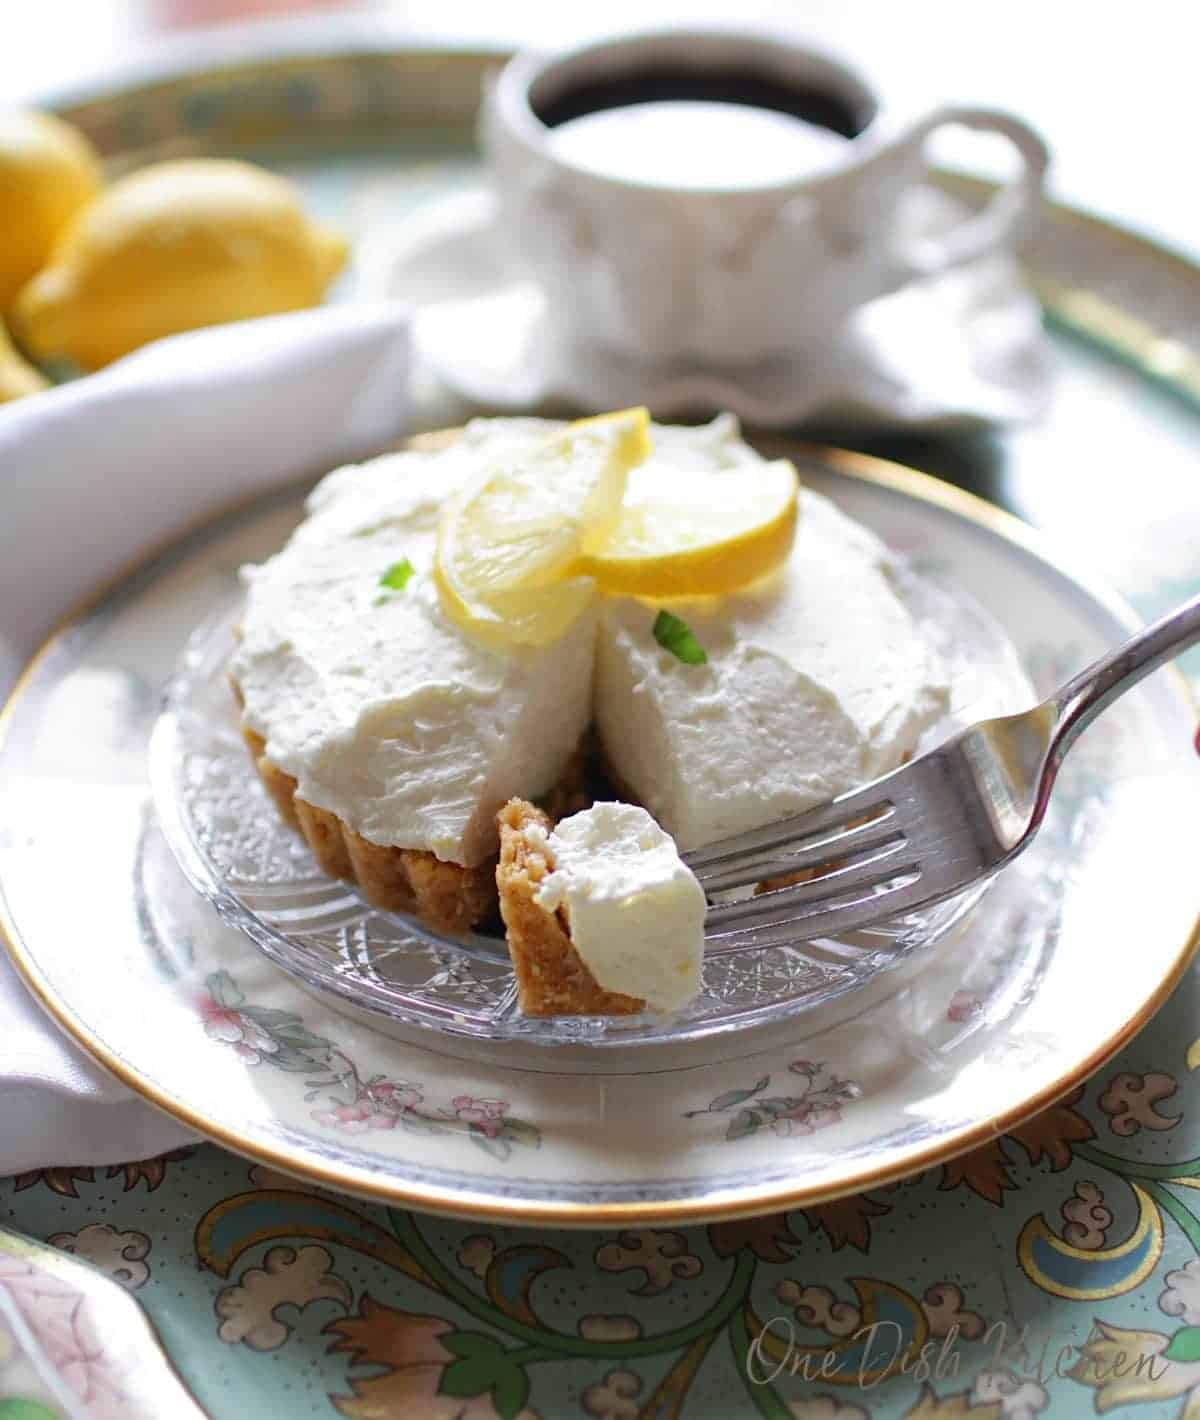 Forkful of lemon cheesecake mousse on a glass plate with whole lemons and a mug of coffee on a metal tray